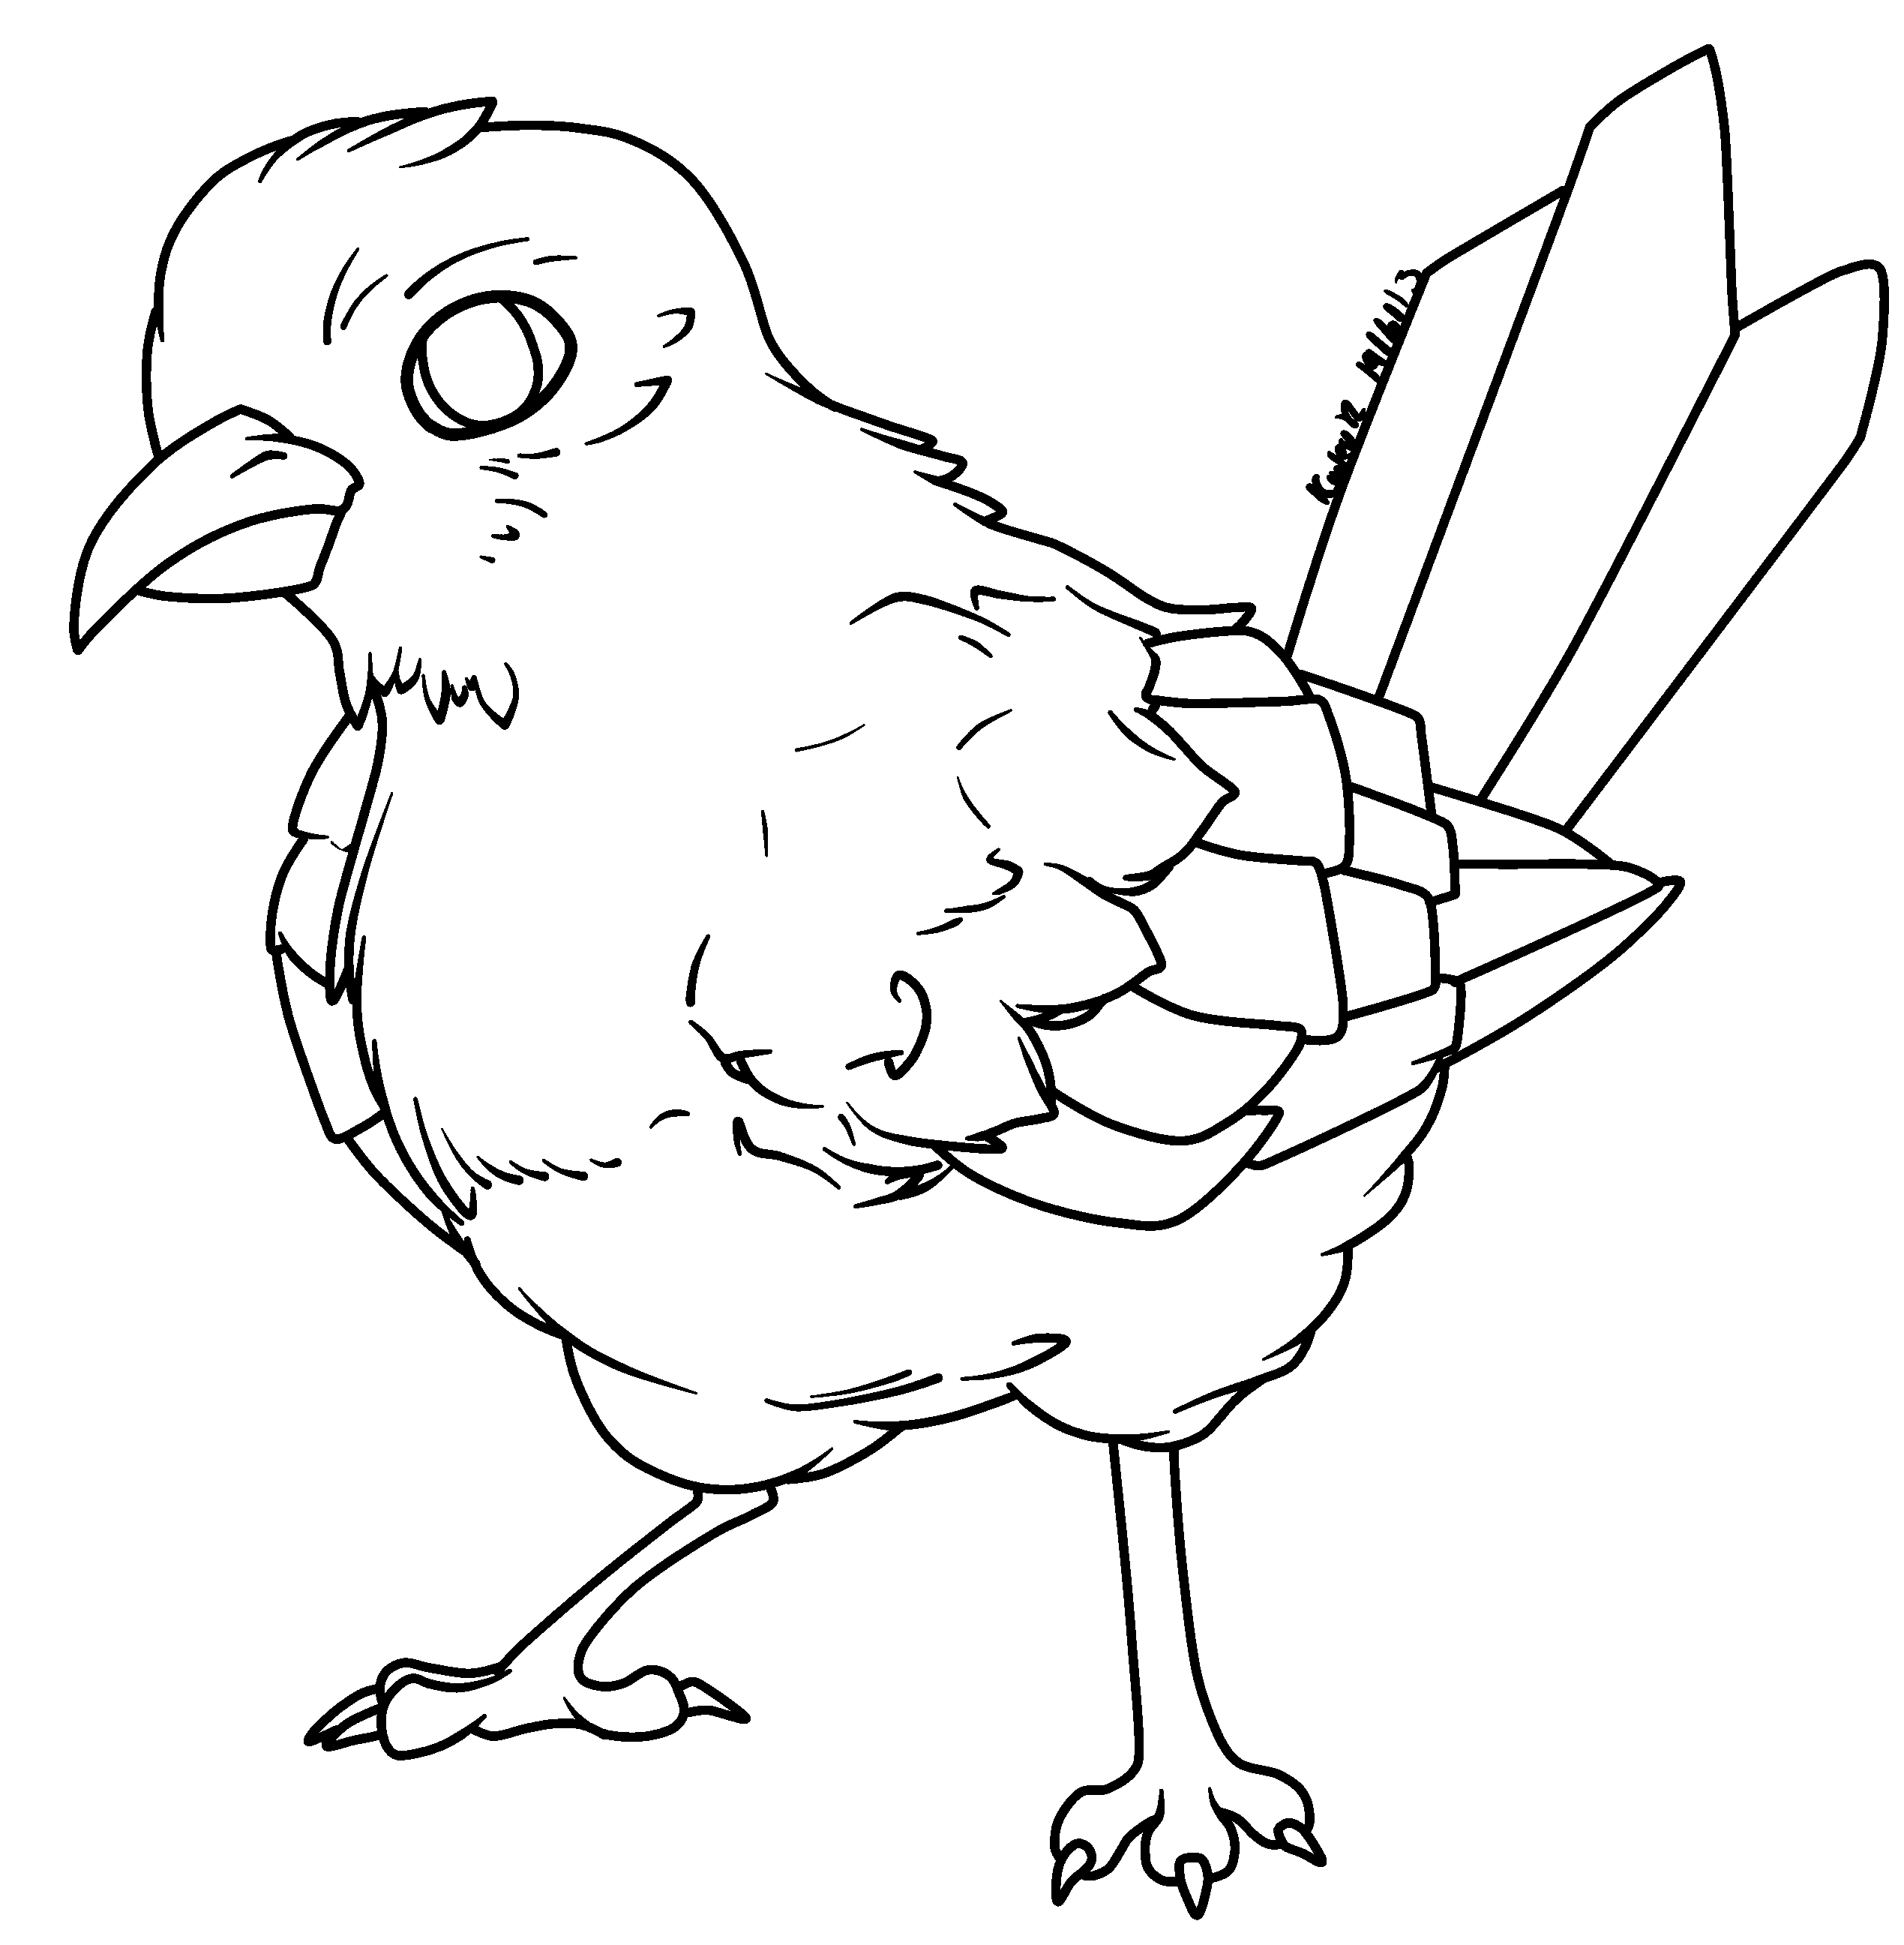 Line Art Animals Drawings : Rq bird lineart by abyssinchaos on deviantart